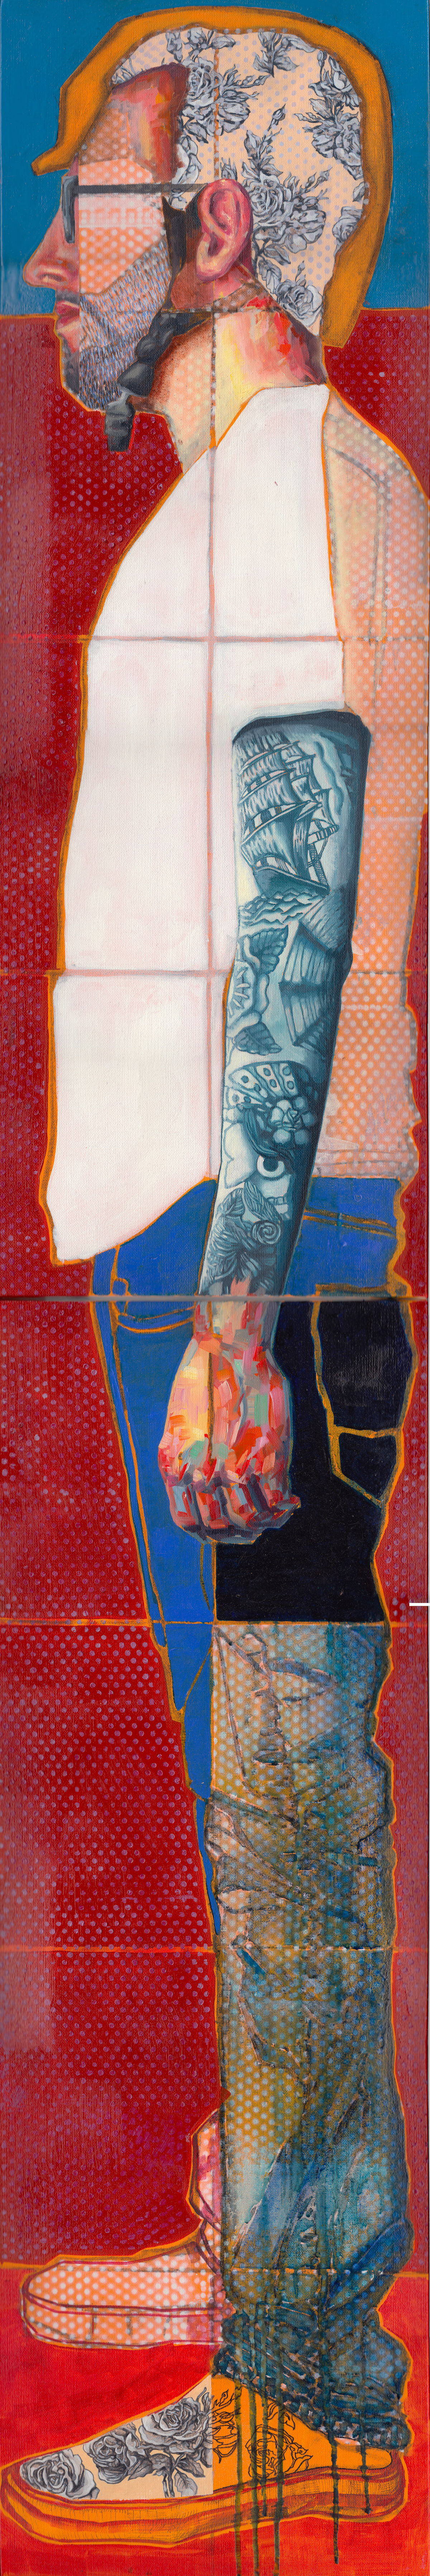 No Diving, In Profile  (diptych) | oil, acrylic, aerosol, pen & ink on canvas | 6' x 1'